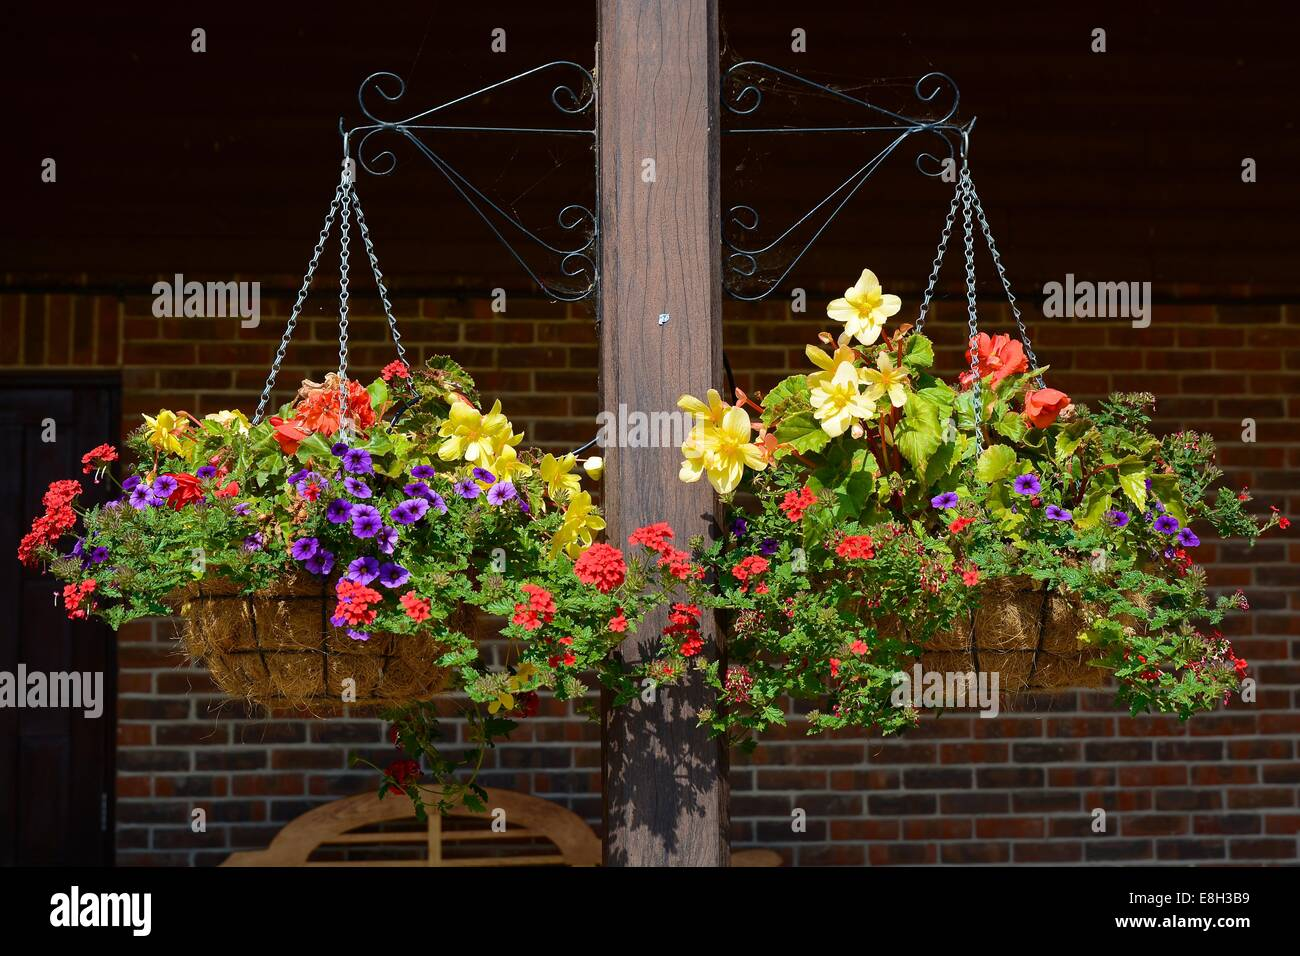 Two hanging baskets with colourful flowers - Stock Image